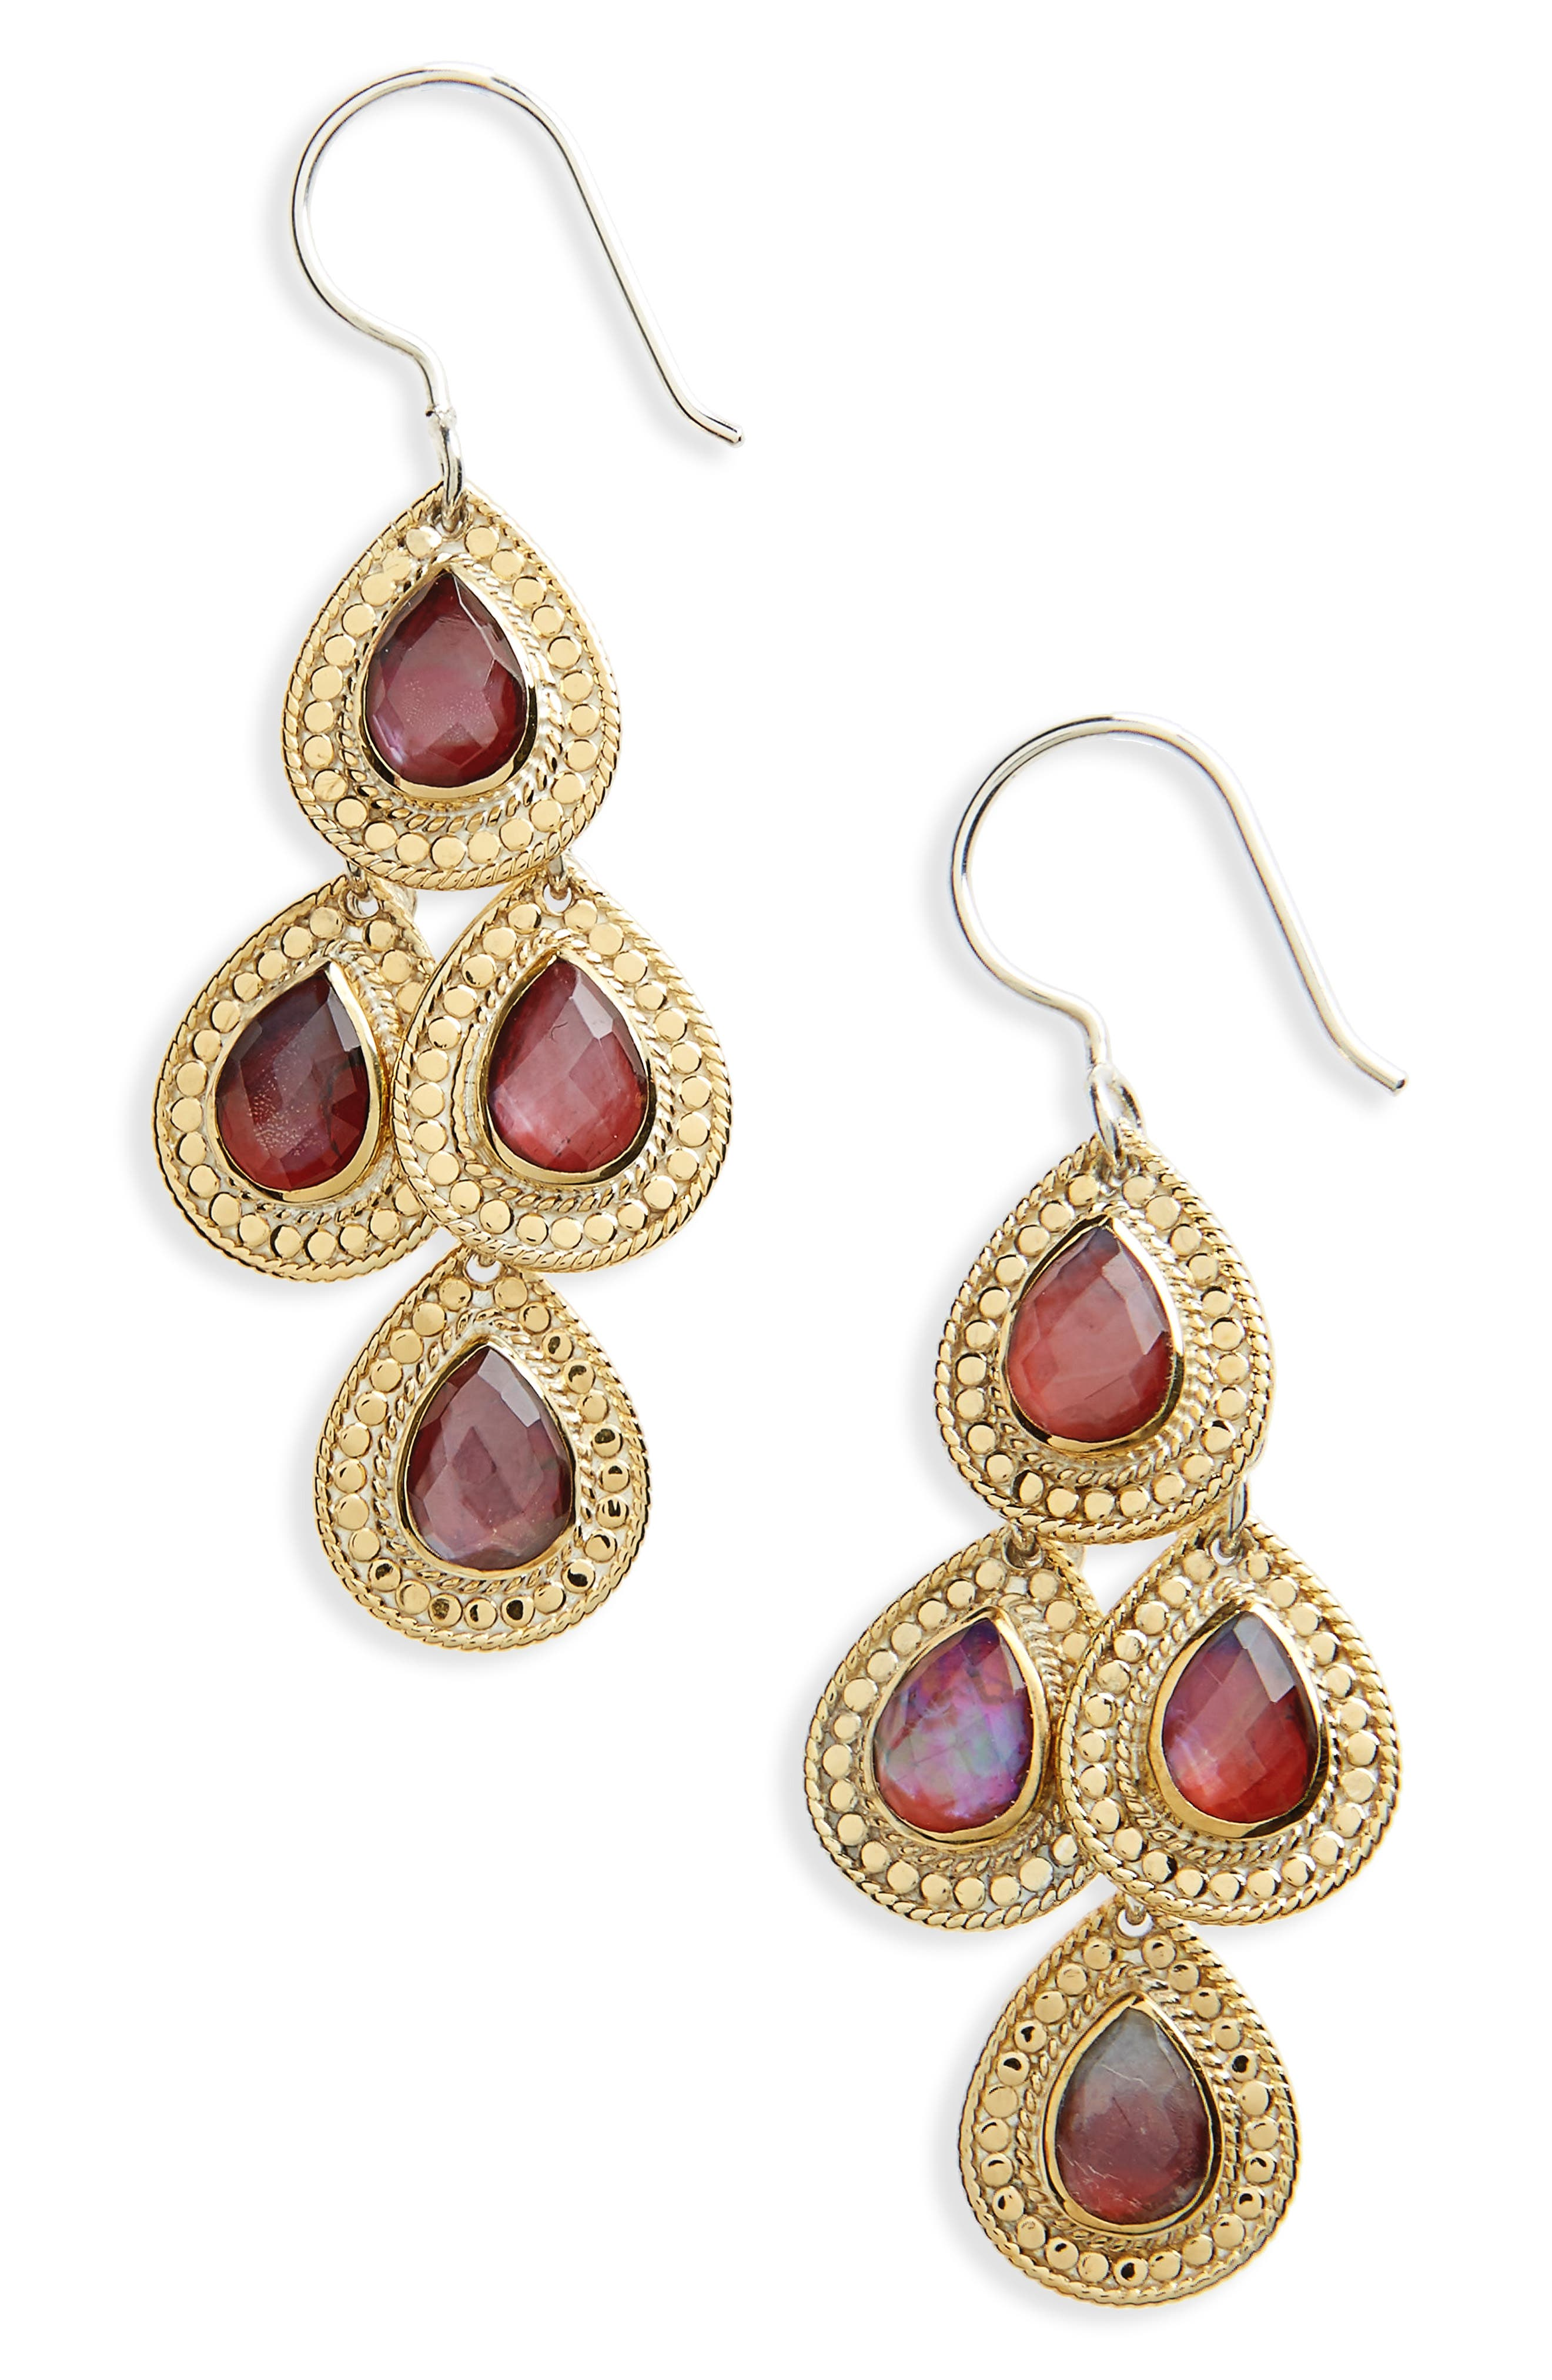 Main Image - Anna Beck Stone Chandelier Earrings